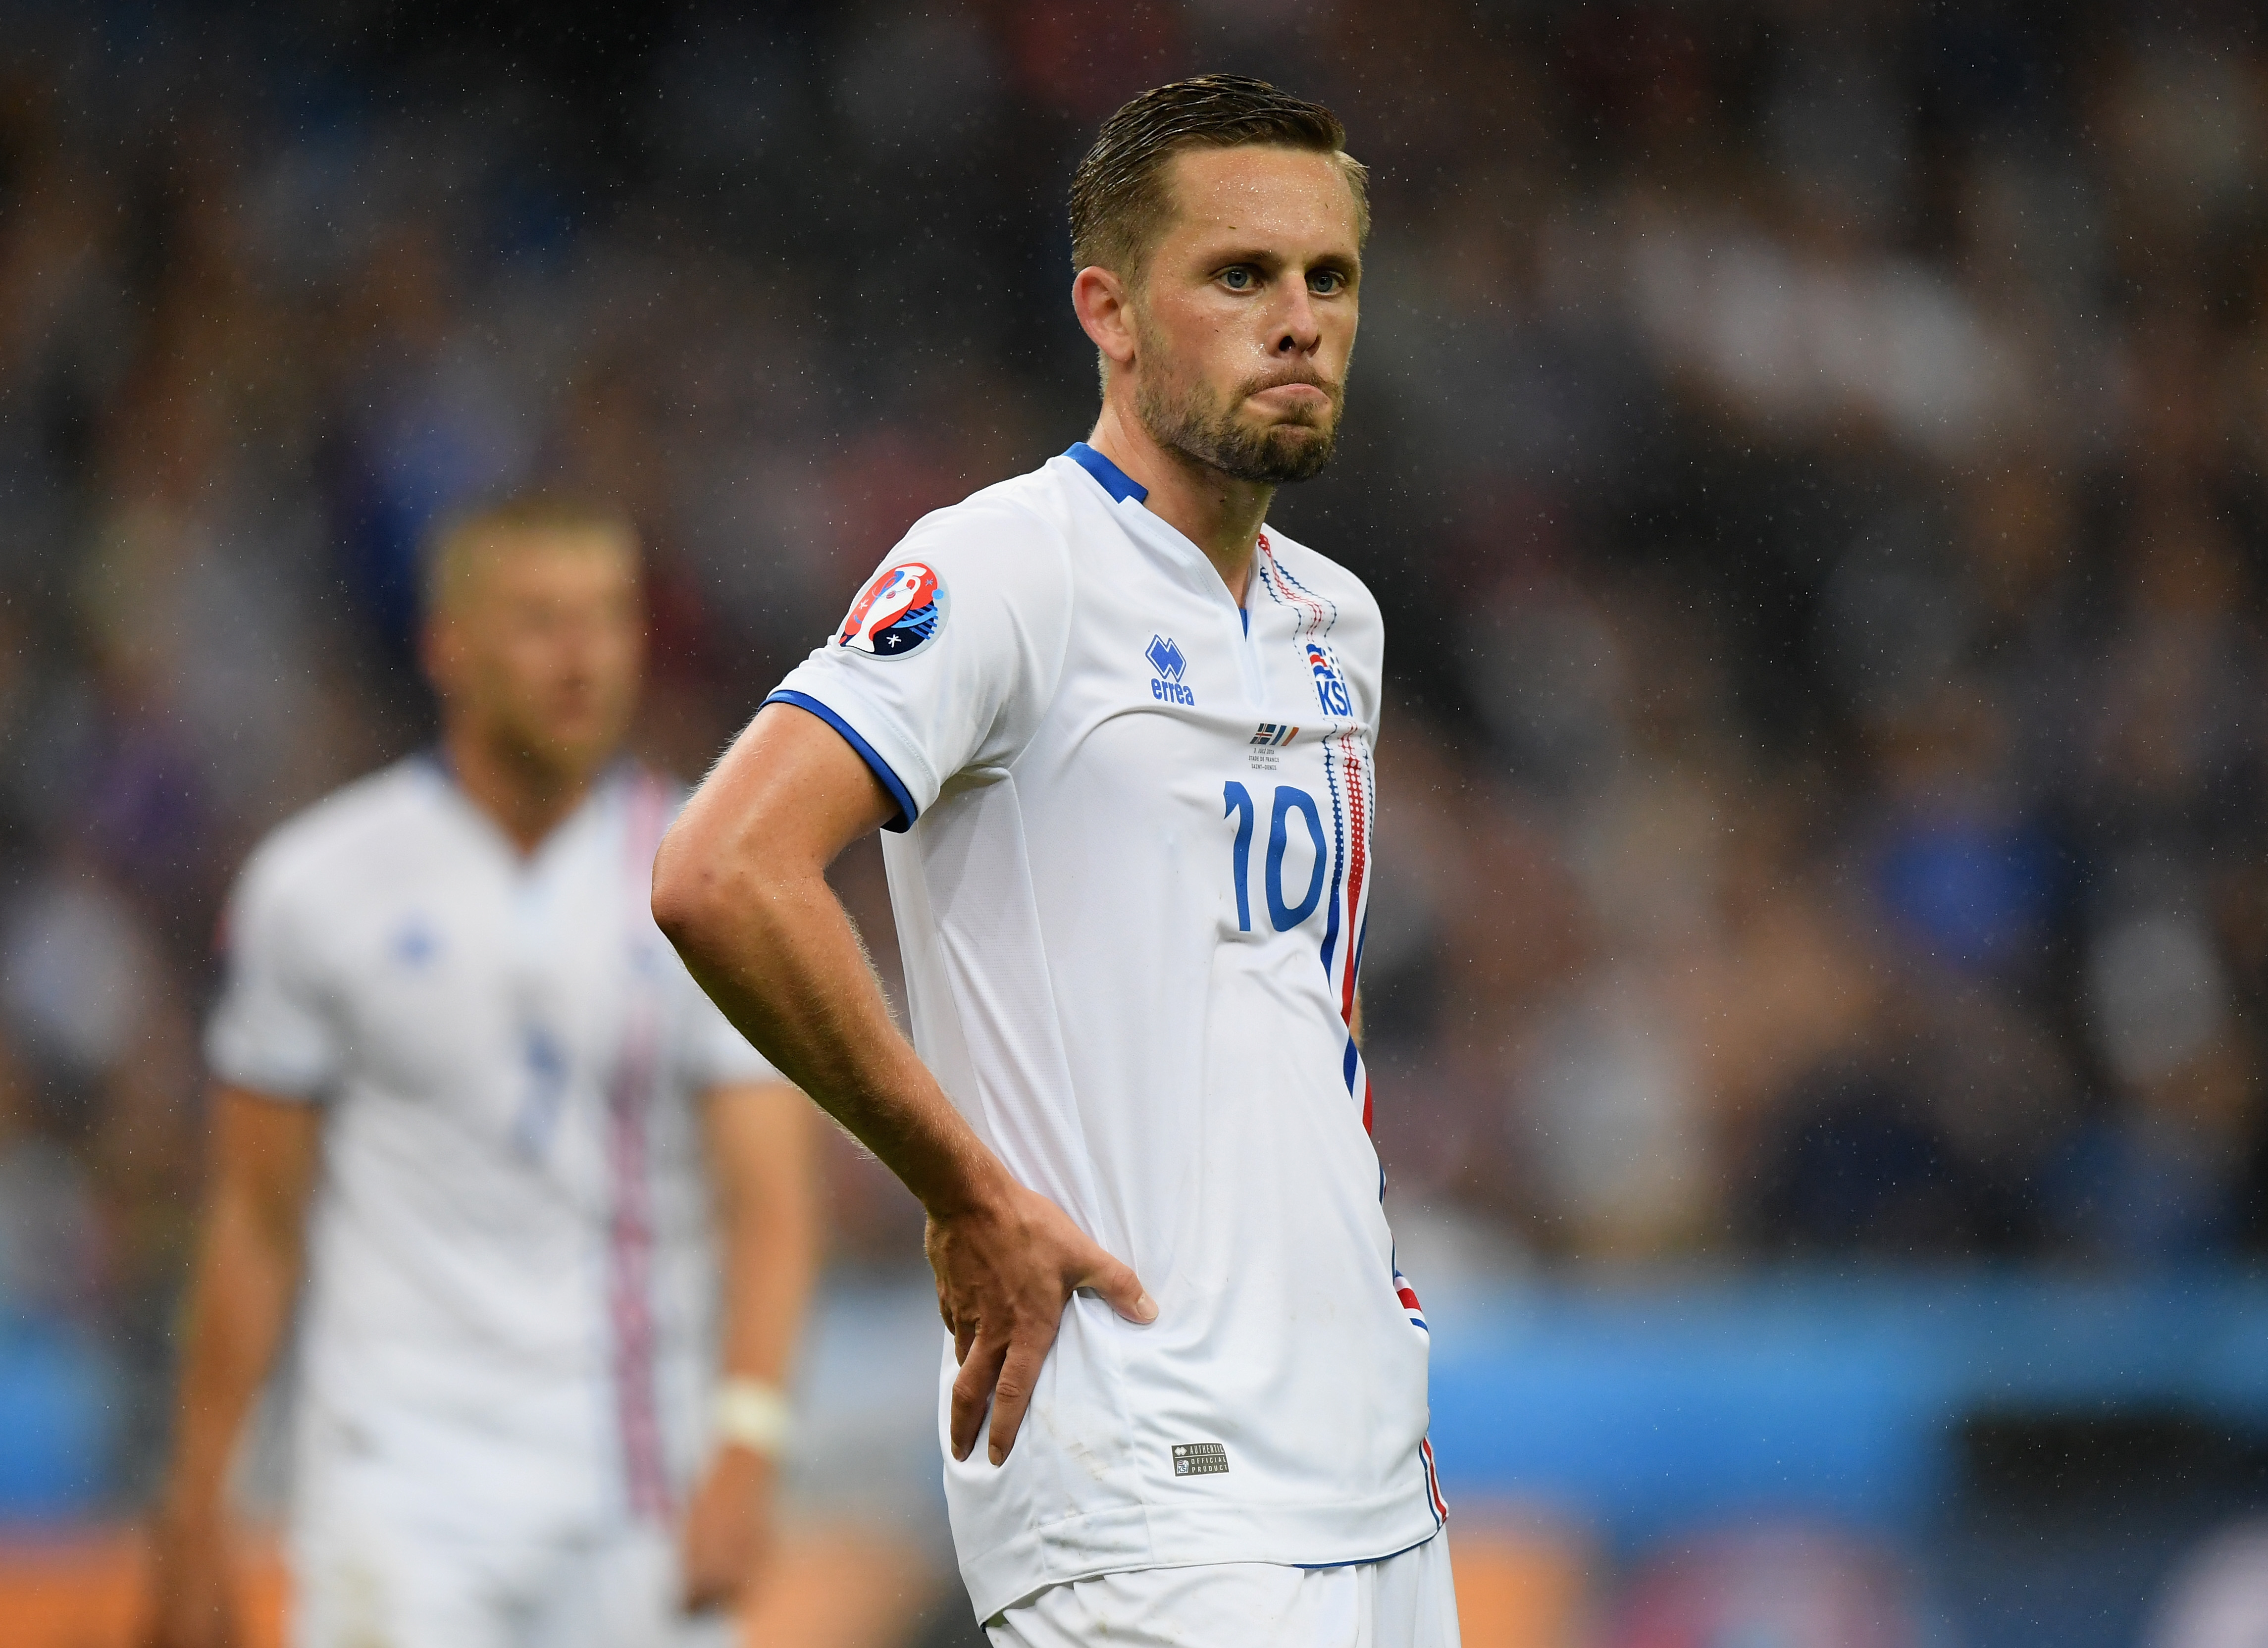 Gylfi Sigurdsson transfer reportedly nearing finish line Royal